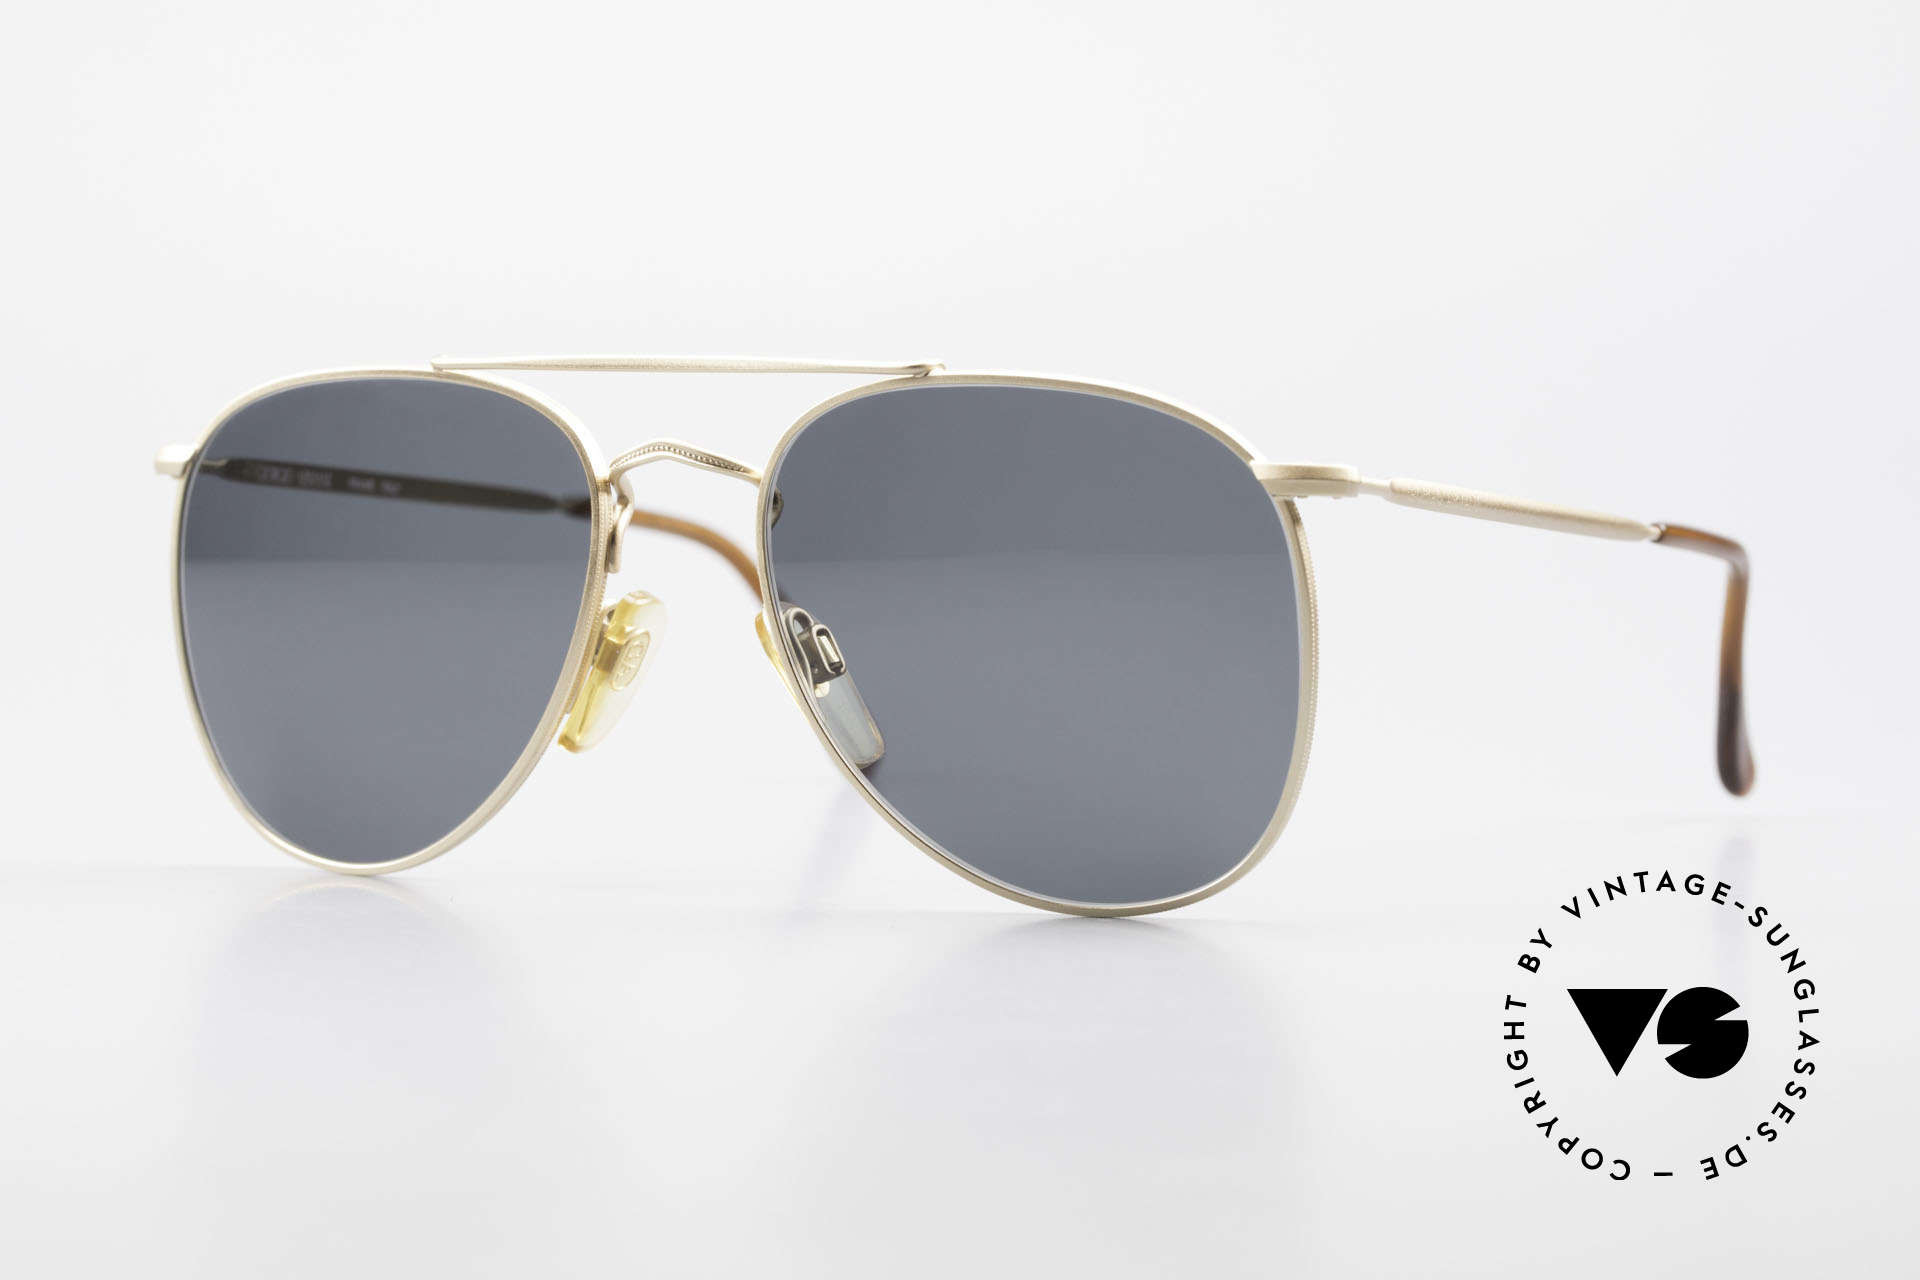 Giorgio Armani 149 Small 90'S Aviator Sunglasses, discreet dull gold framework with double bridge, Made for Men and Women